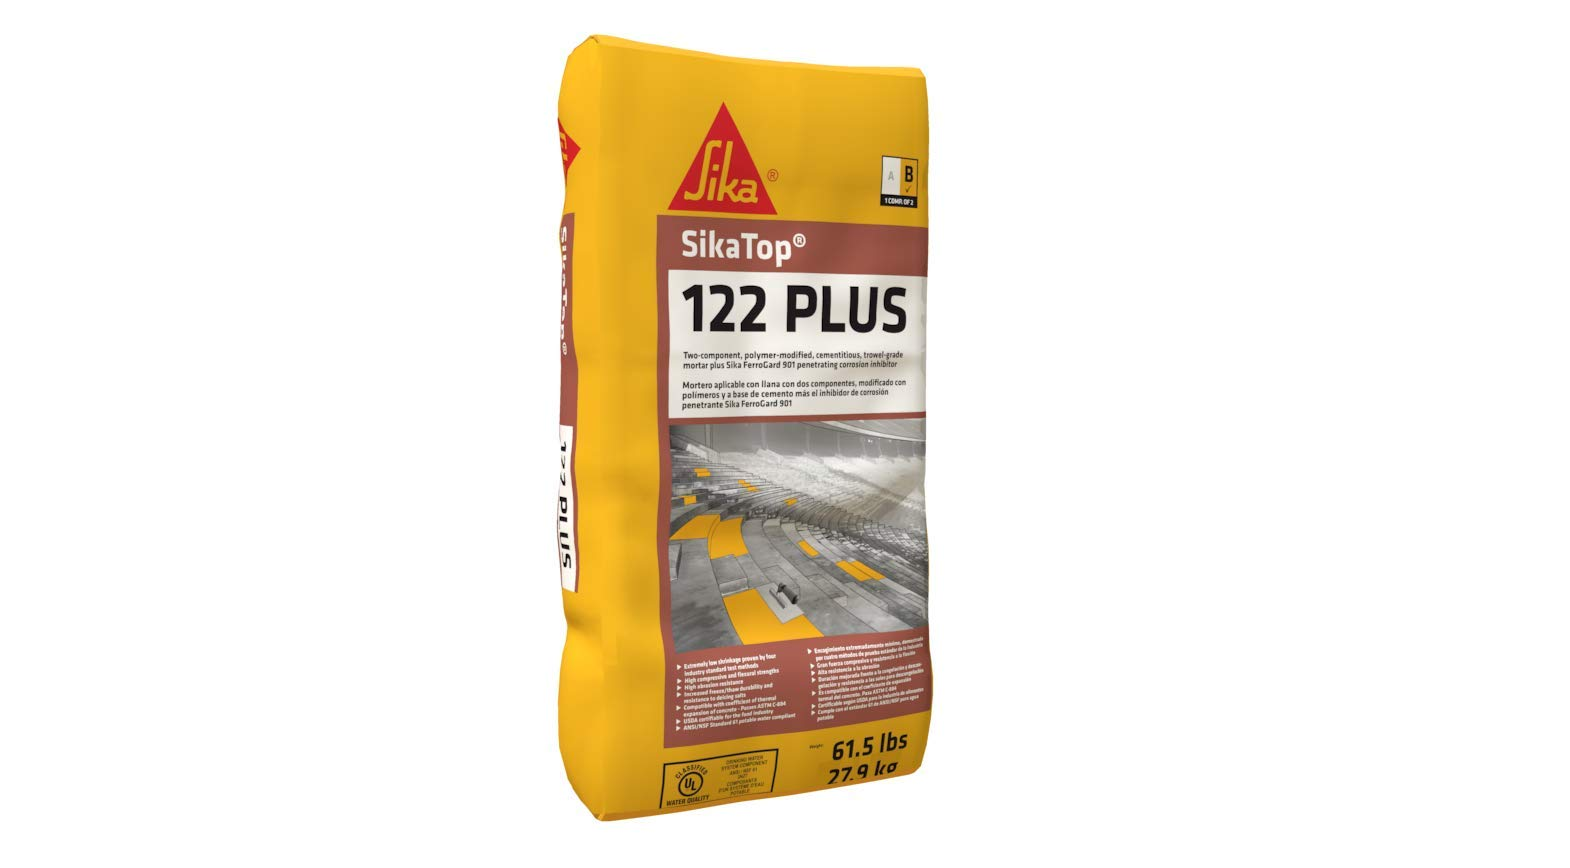 Sika SikaTop 122 Plus, 2-Component Repair Mortar - 1 Gallon Jug + 61.5 Lb Bag